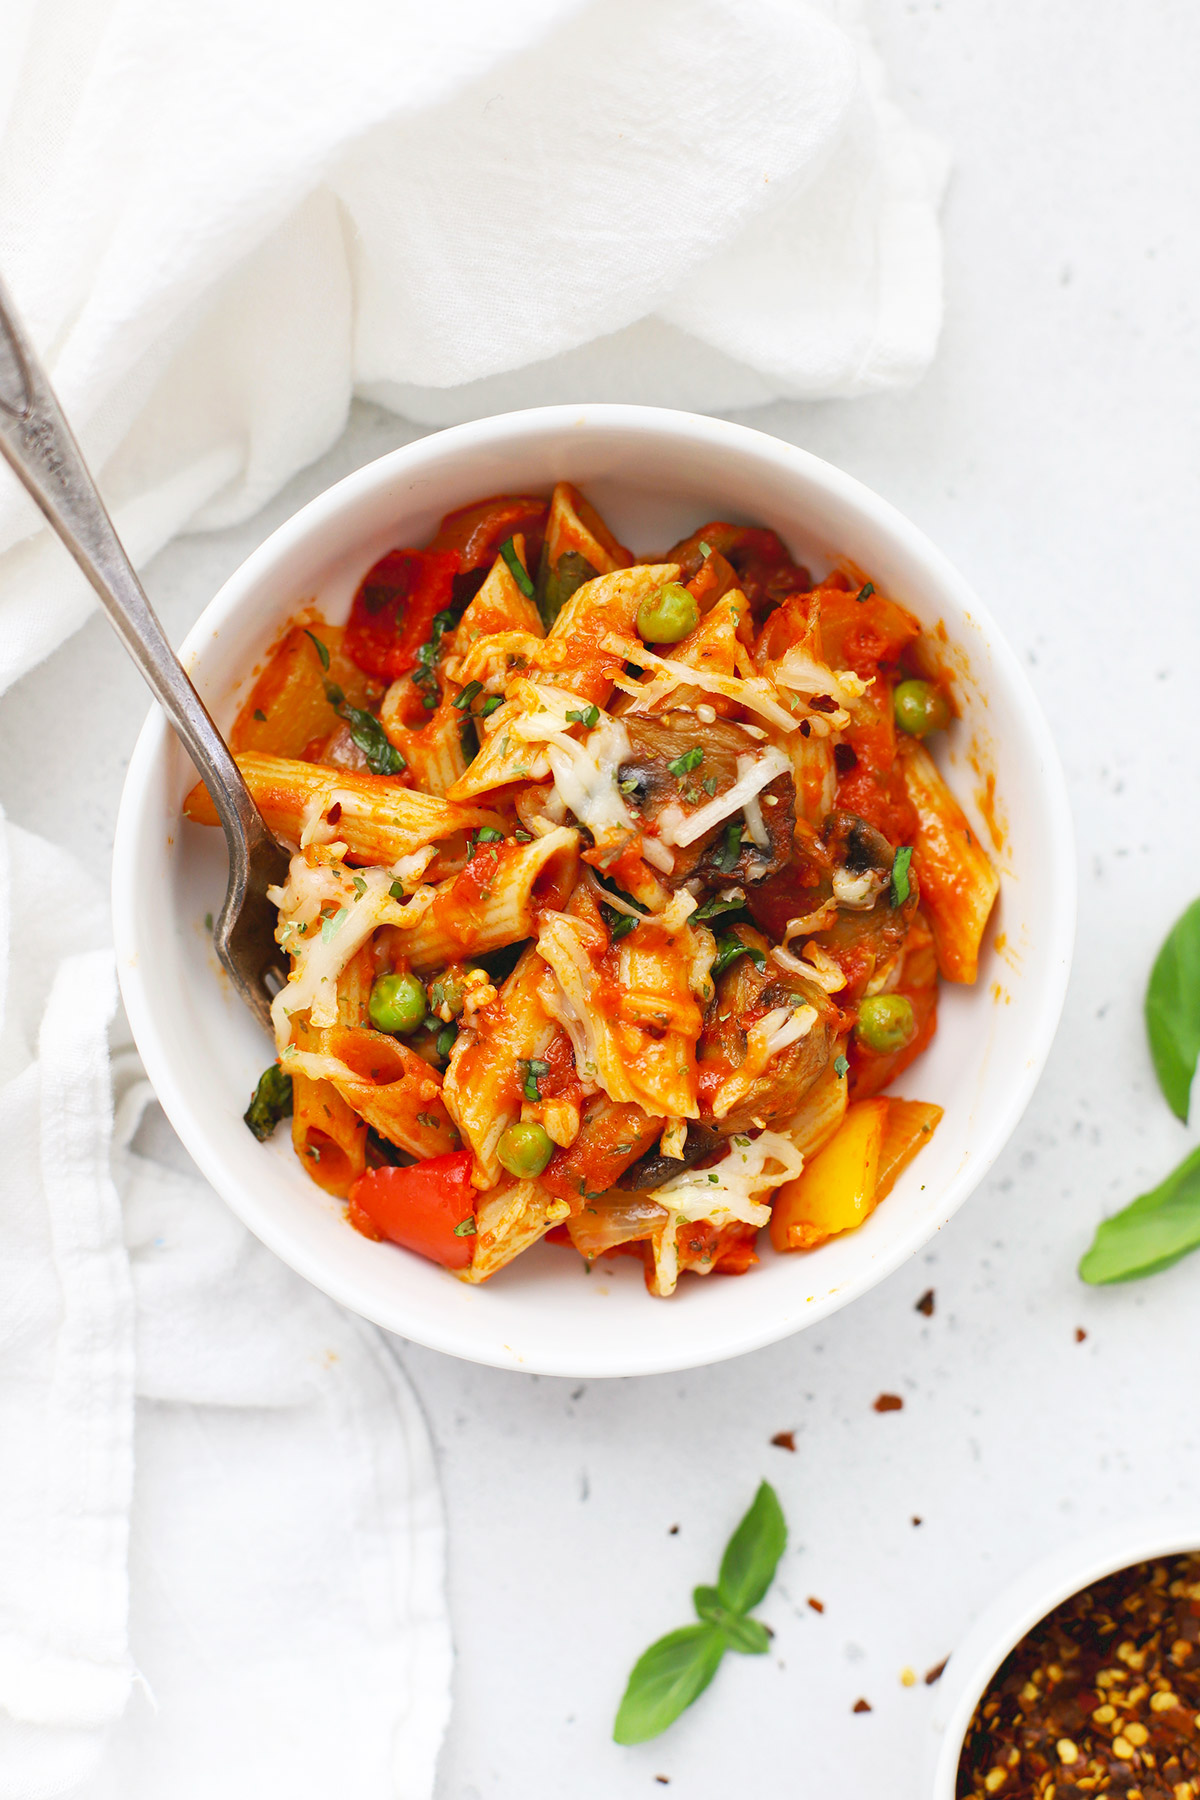 A white bowl of baked penne with roasted veggies